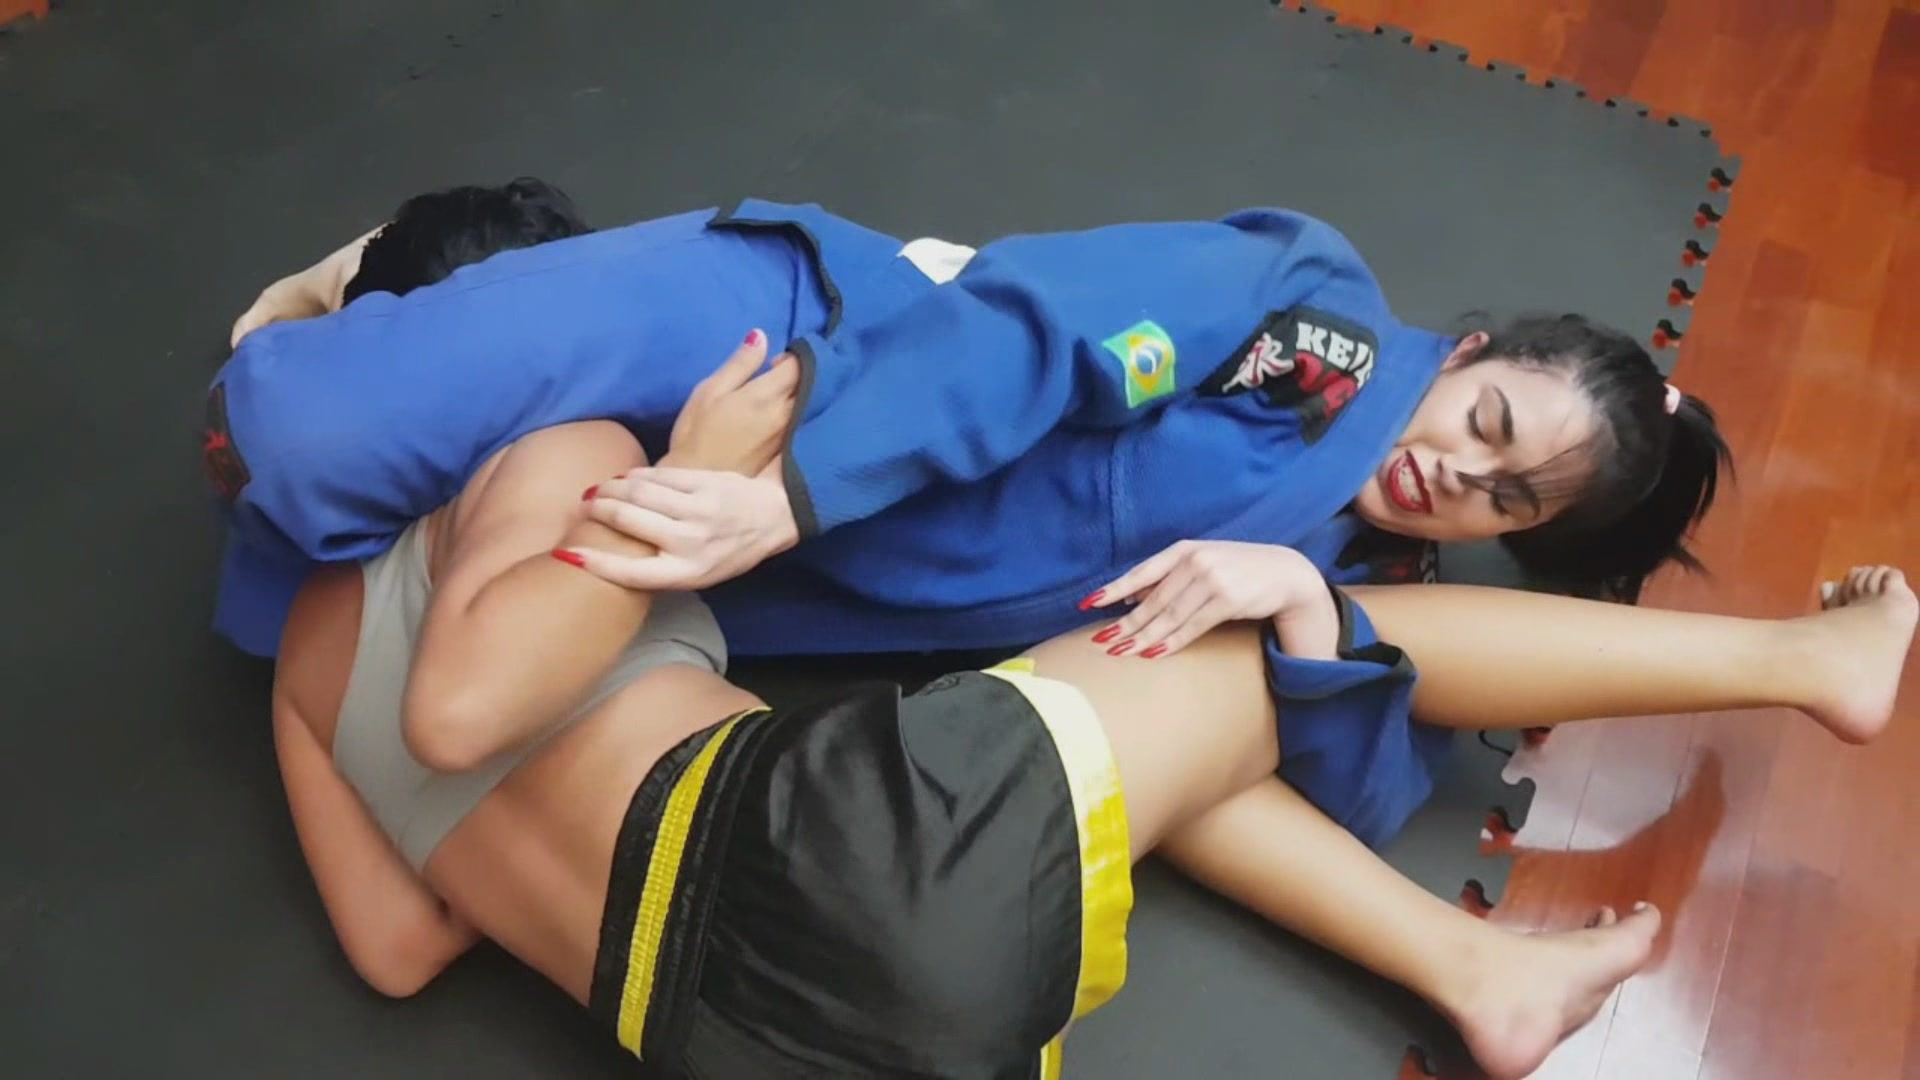 The Submission Of The Catfights